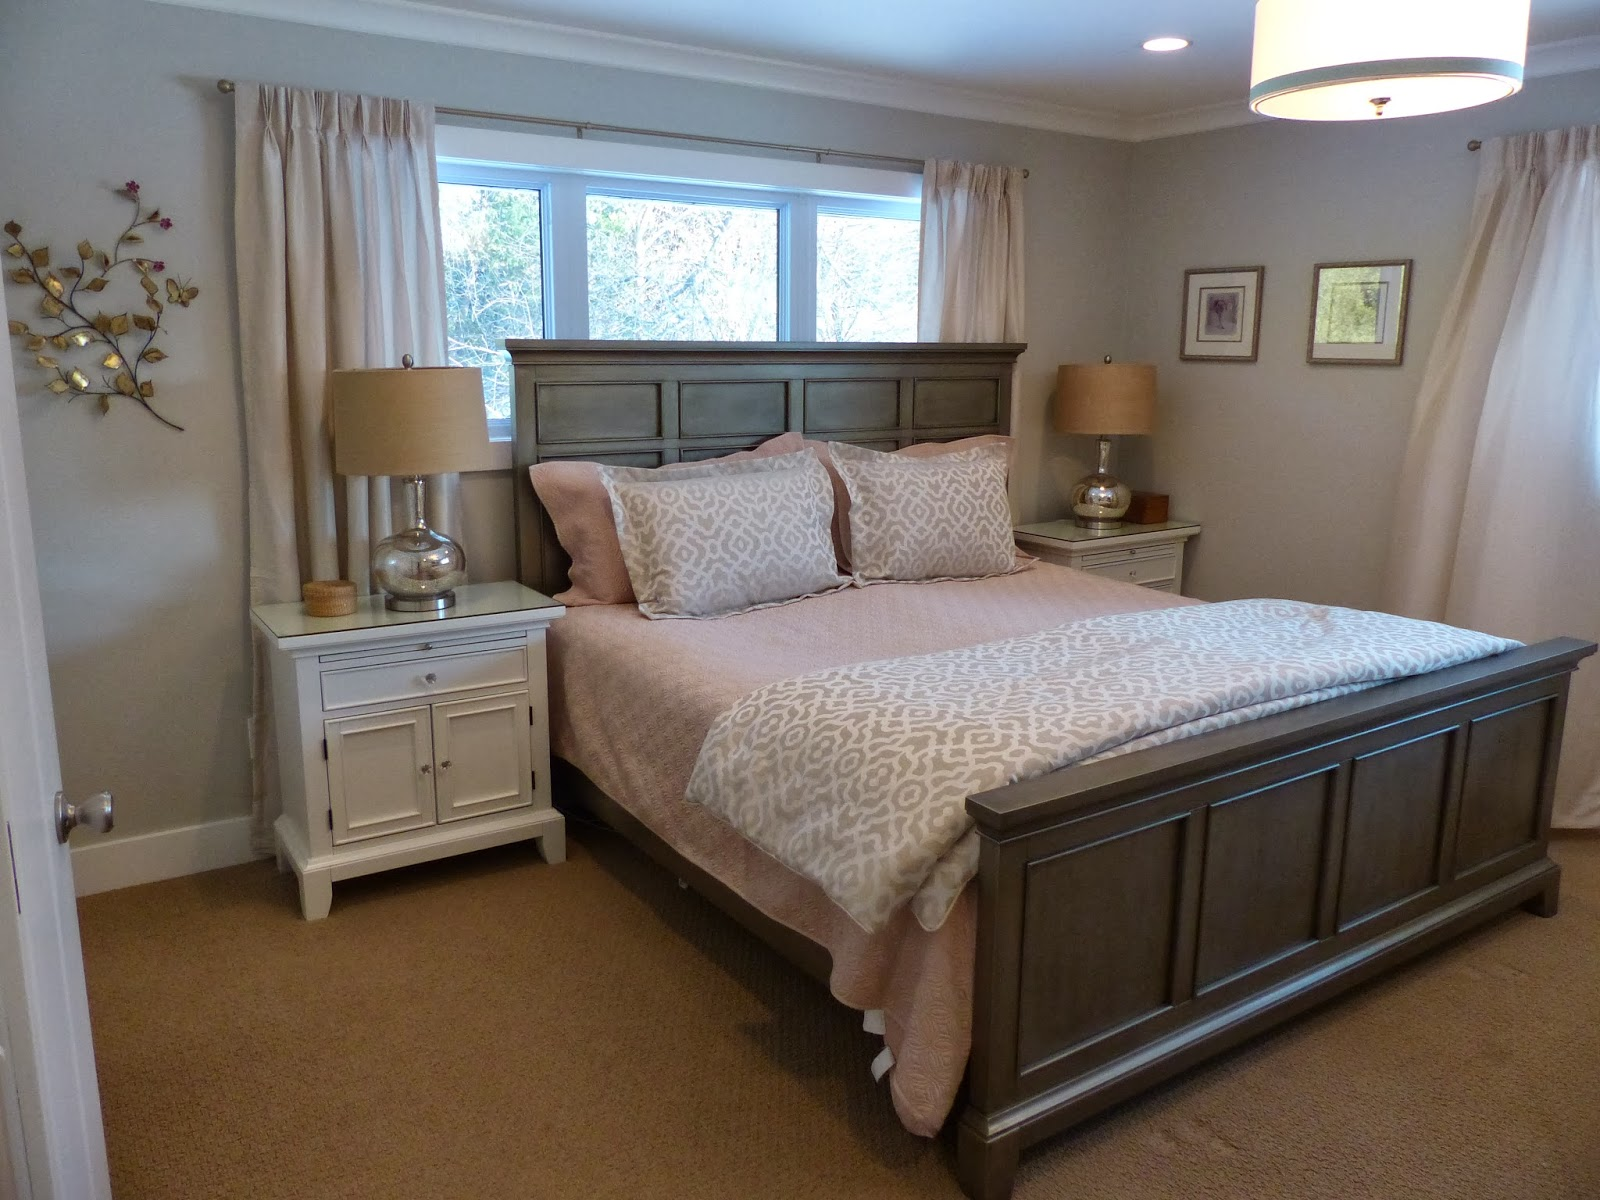 Master Bedroom Makeover Julie Peterson Simple Redesign Master Bedroom Makeover